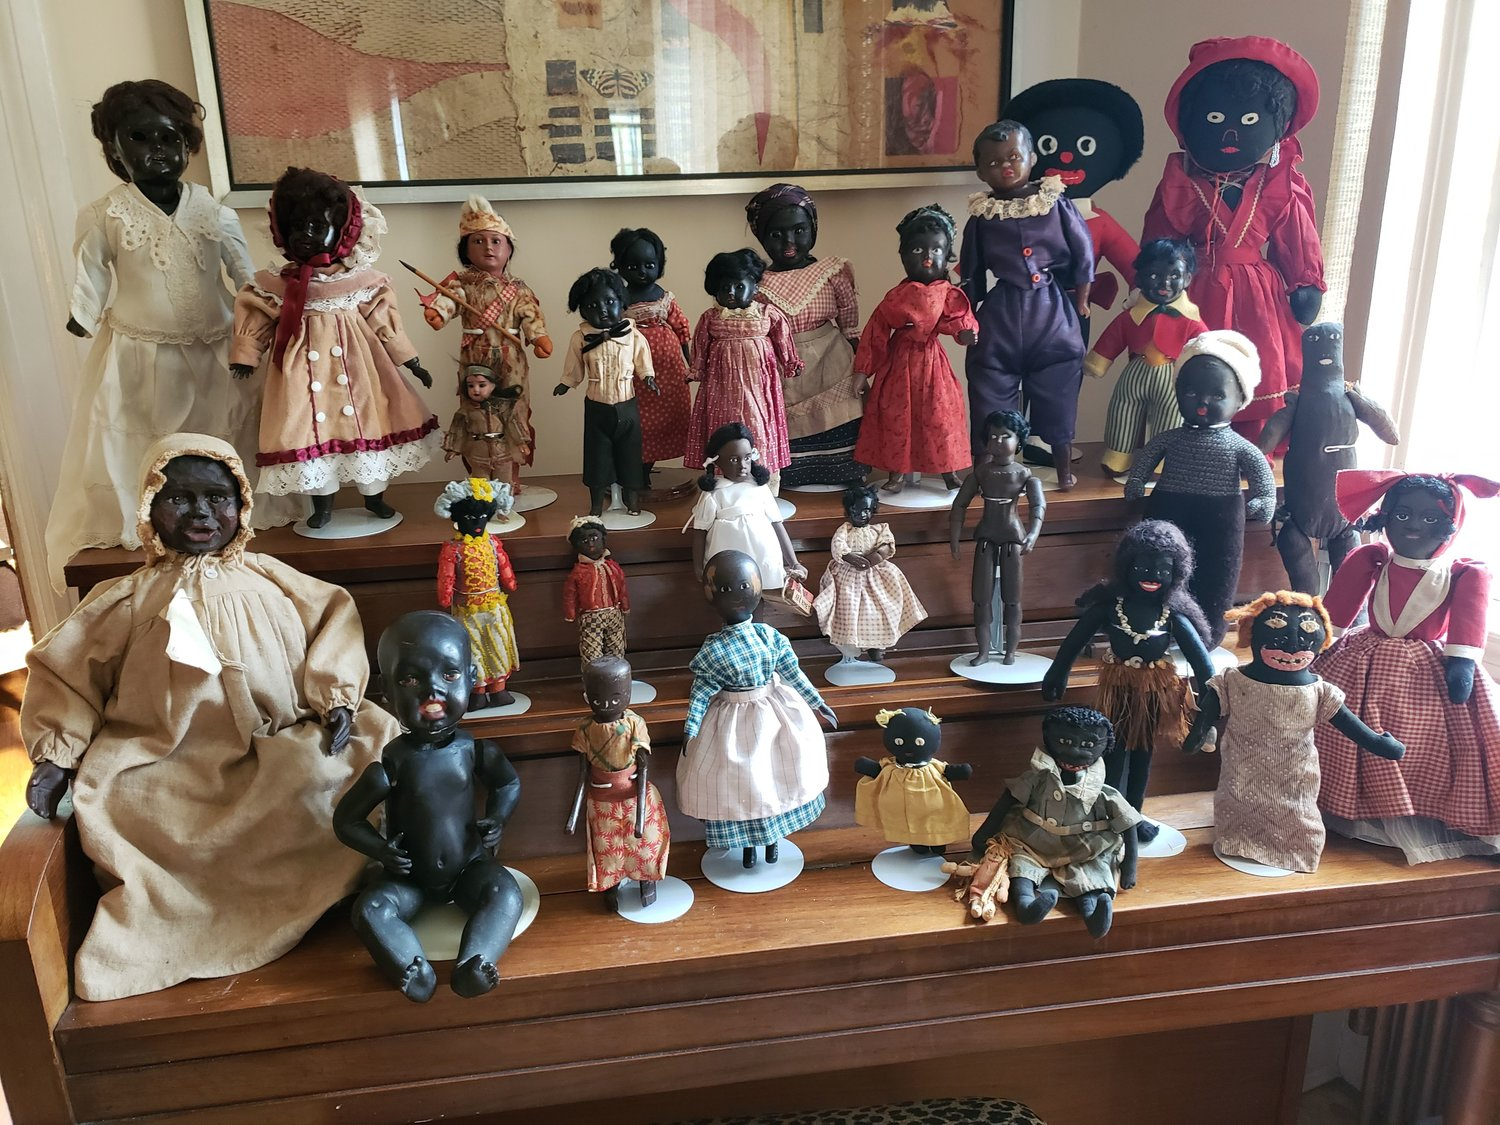 Freeporter April Marius has collected 362 rare and antique dolls of color, which she carefully stores at her home.